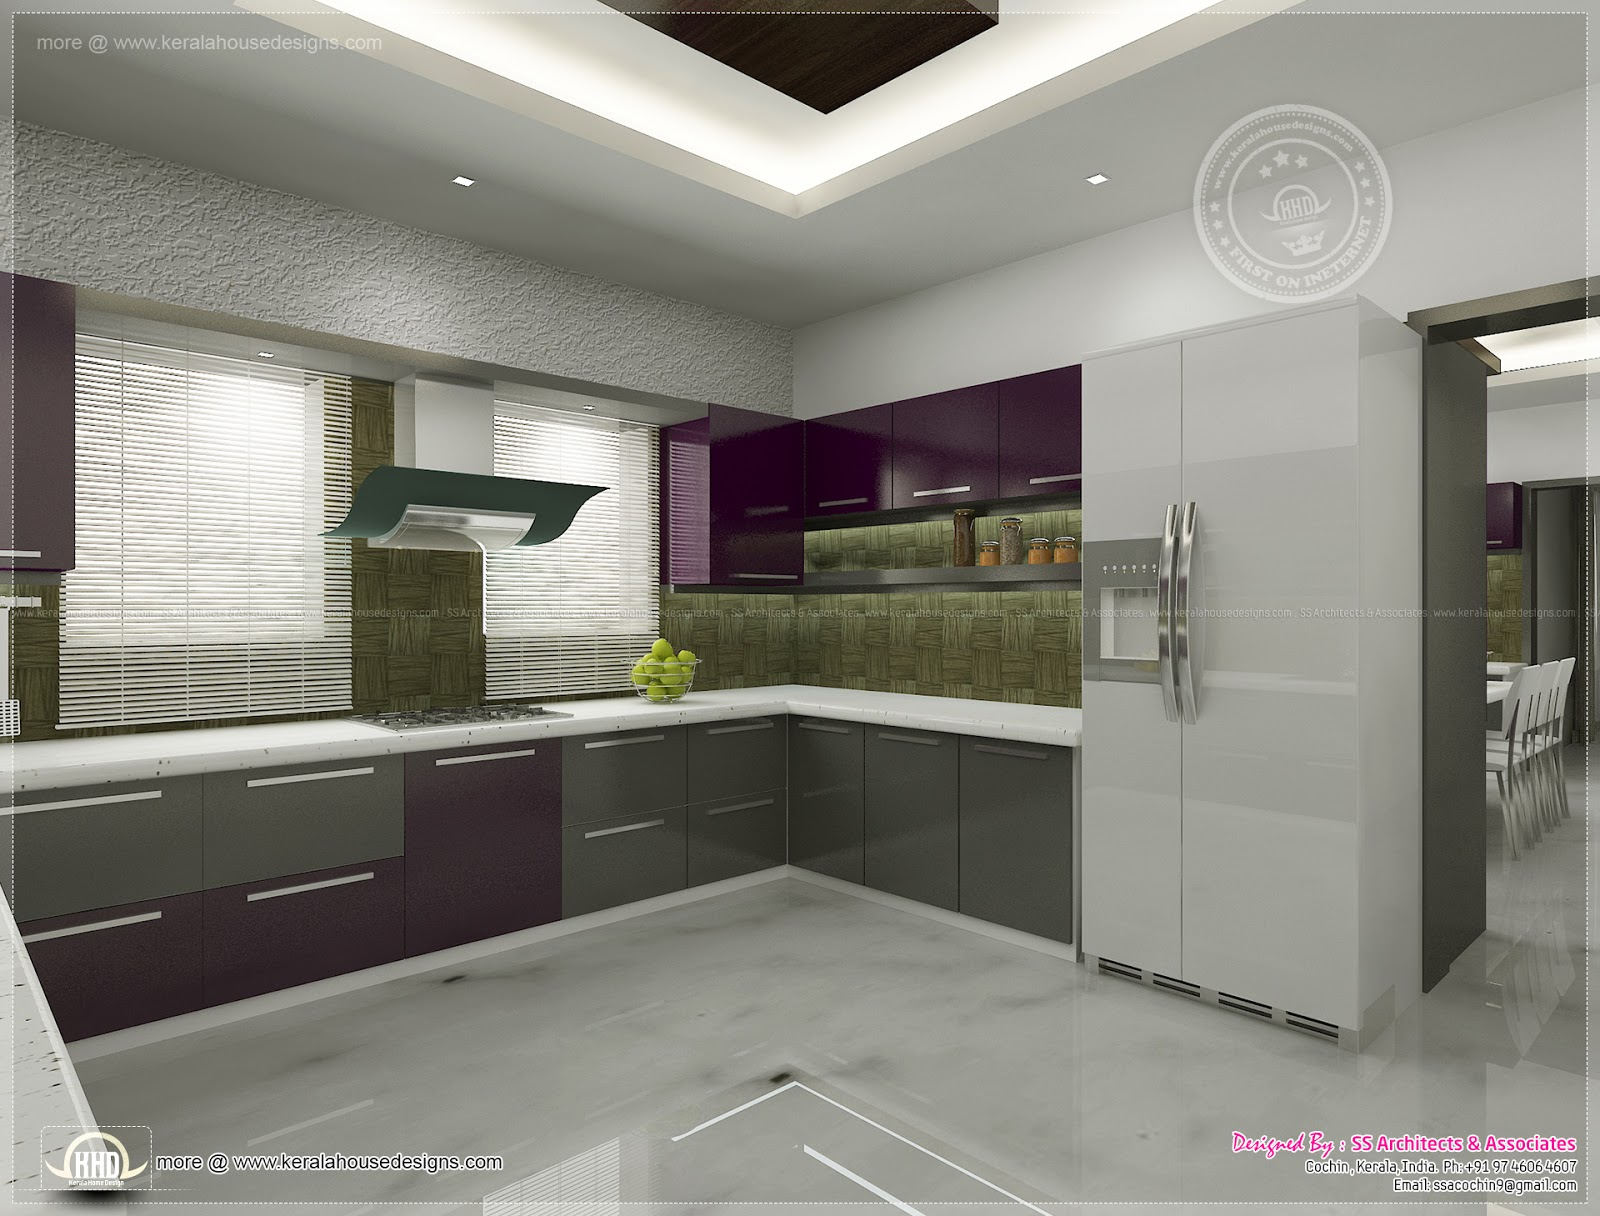 Kitchen interior views by ss architects cochin kerala for Kerala style kitchen photos